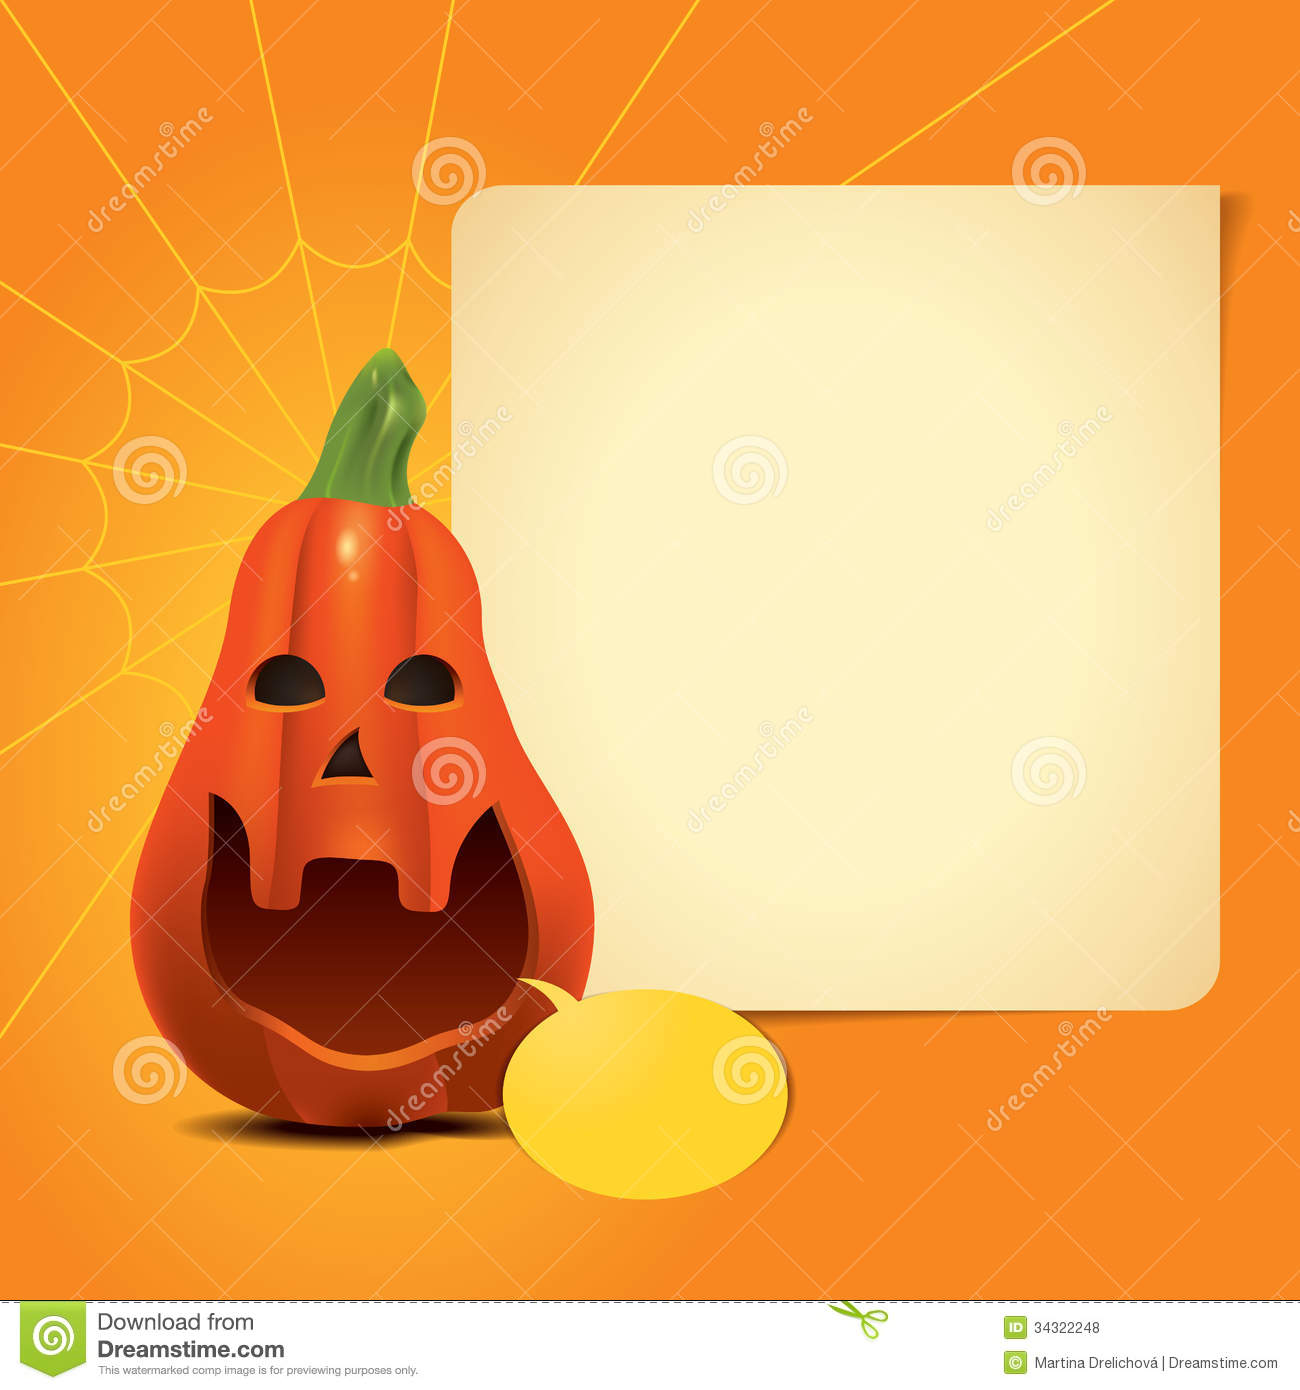 https://thumbs.dreamstime.com/z/pumpkin-invitation-card-orange-empty-list-text-bubble-coloured-background-34322248.jpg